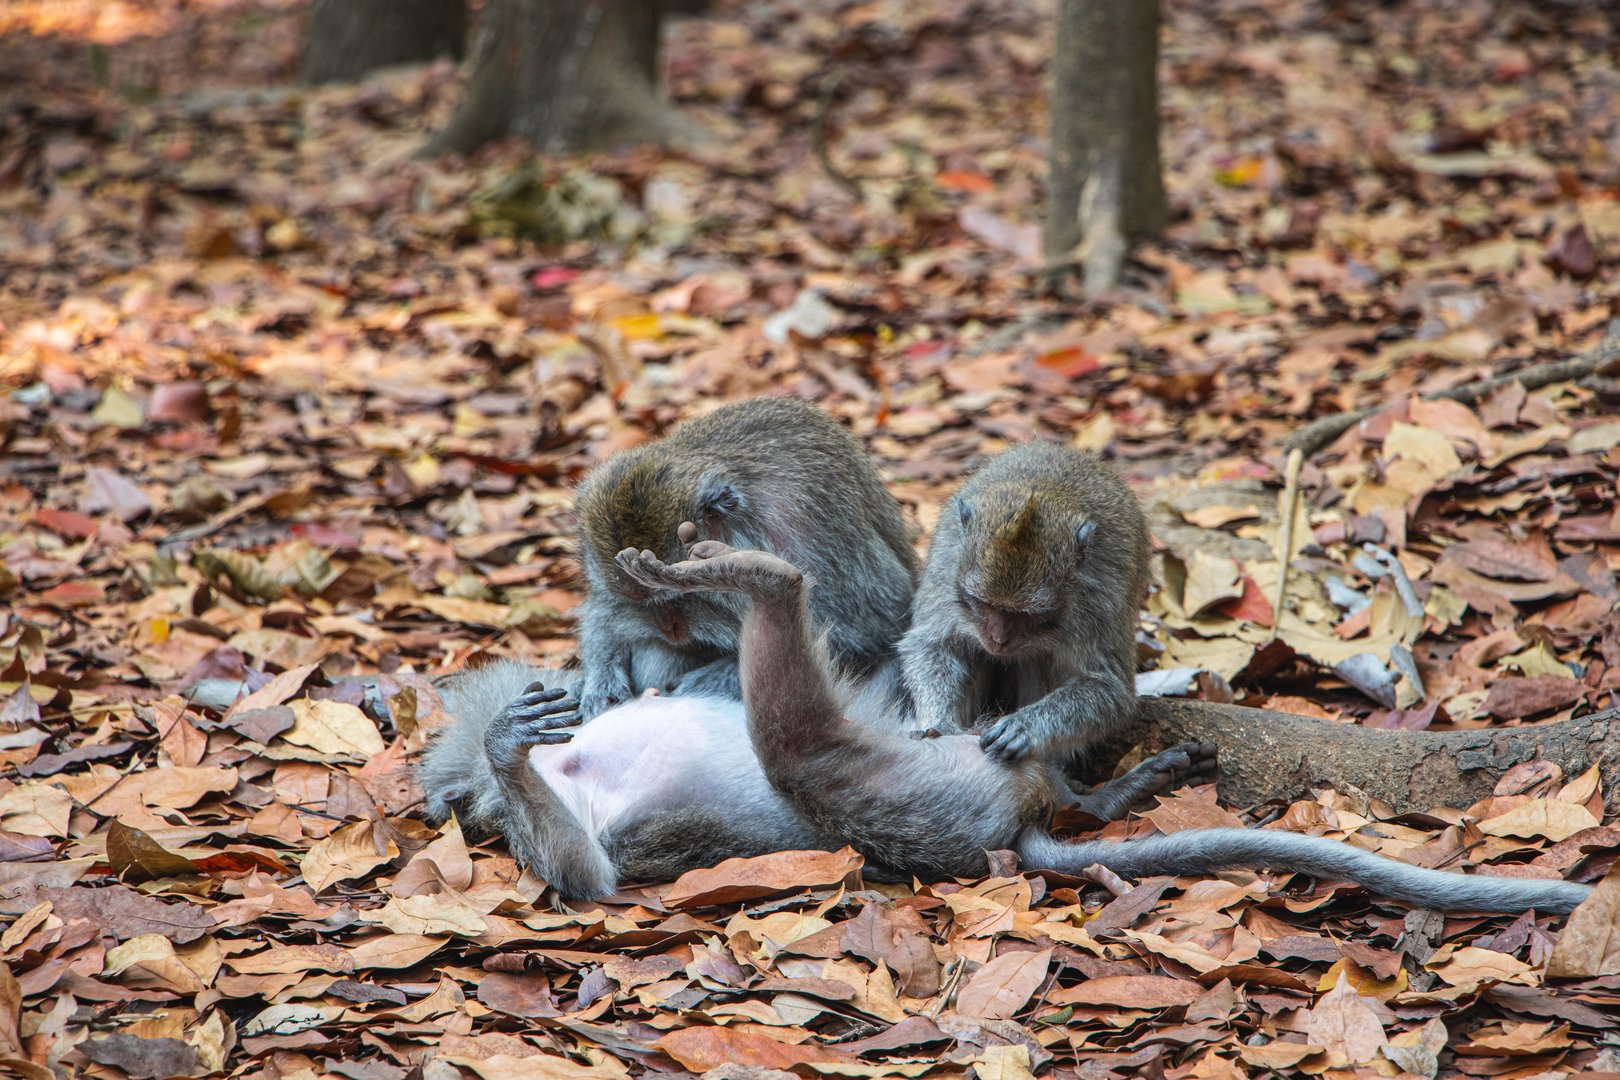 Crab-eating macaque in Monkey Forest